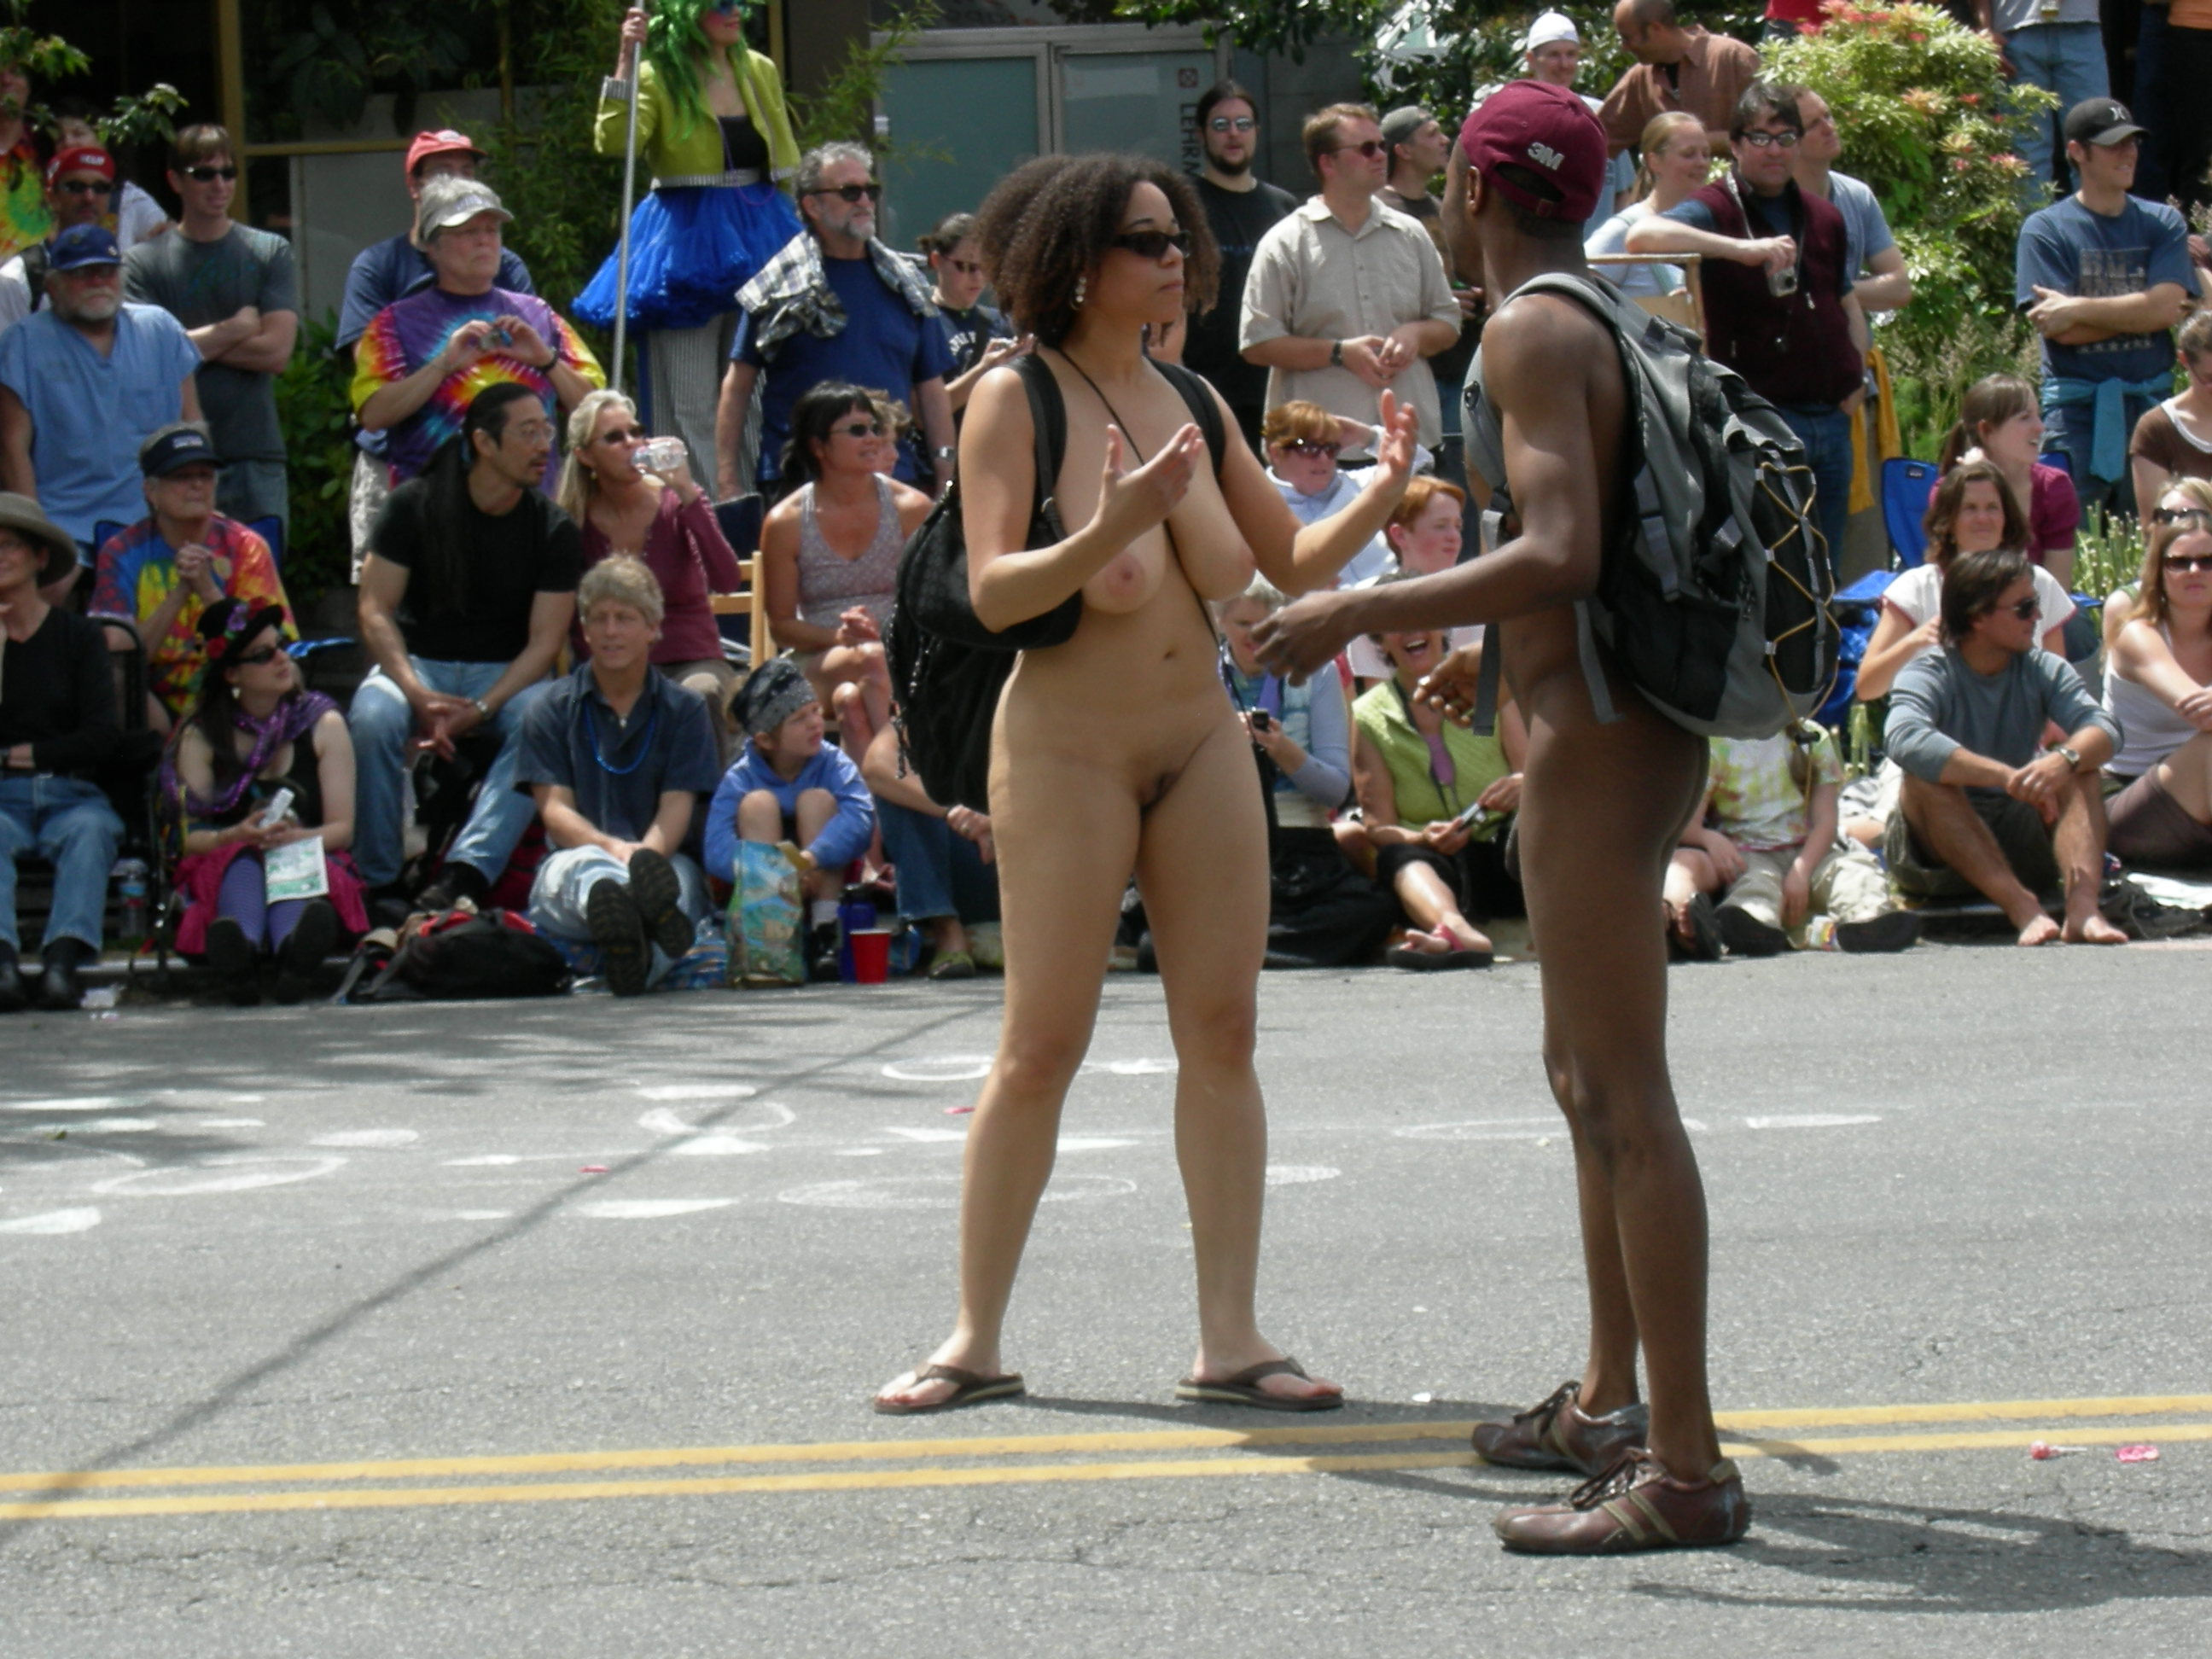 http://upload.wikimedia.org/wikipedia/commons/1/15/Fremont_Solstice_Parade_2007_-_naked_couple_03.jpg